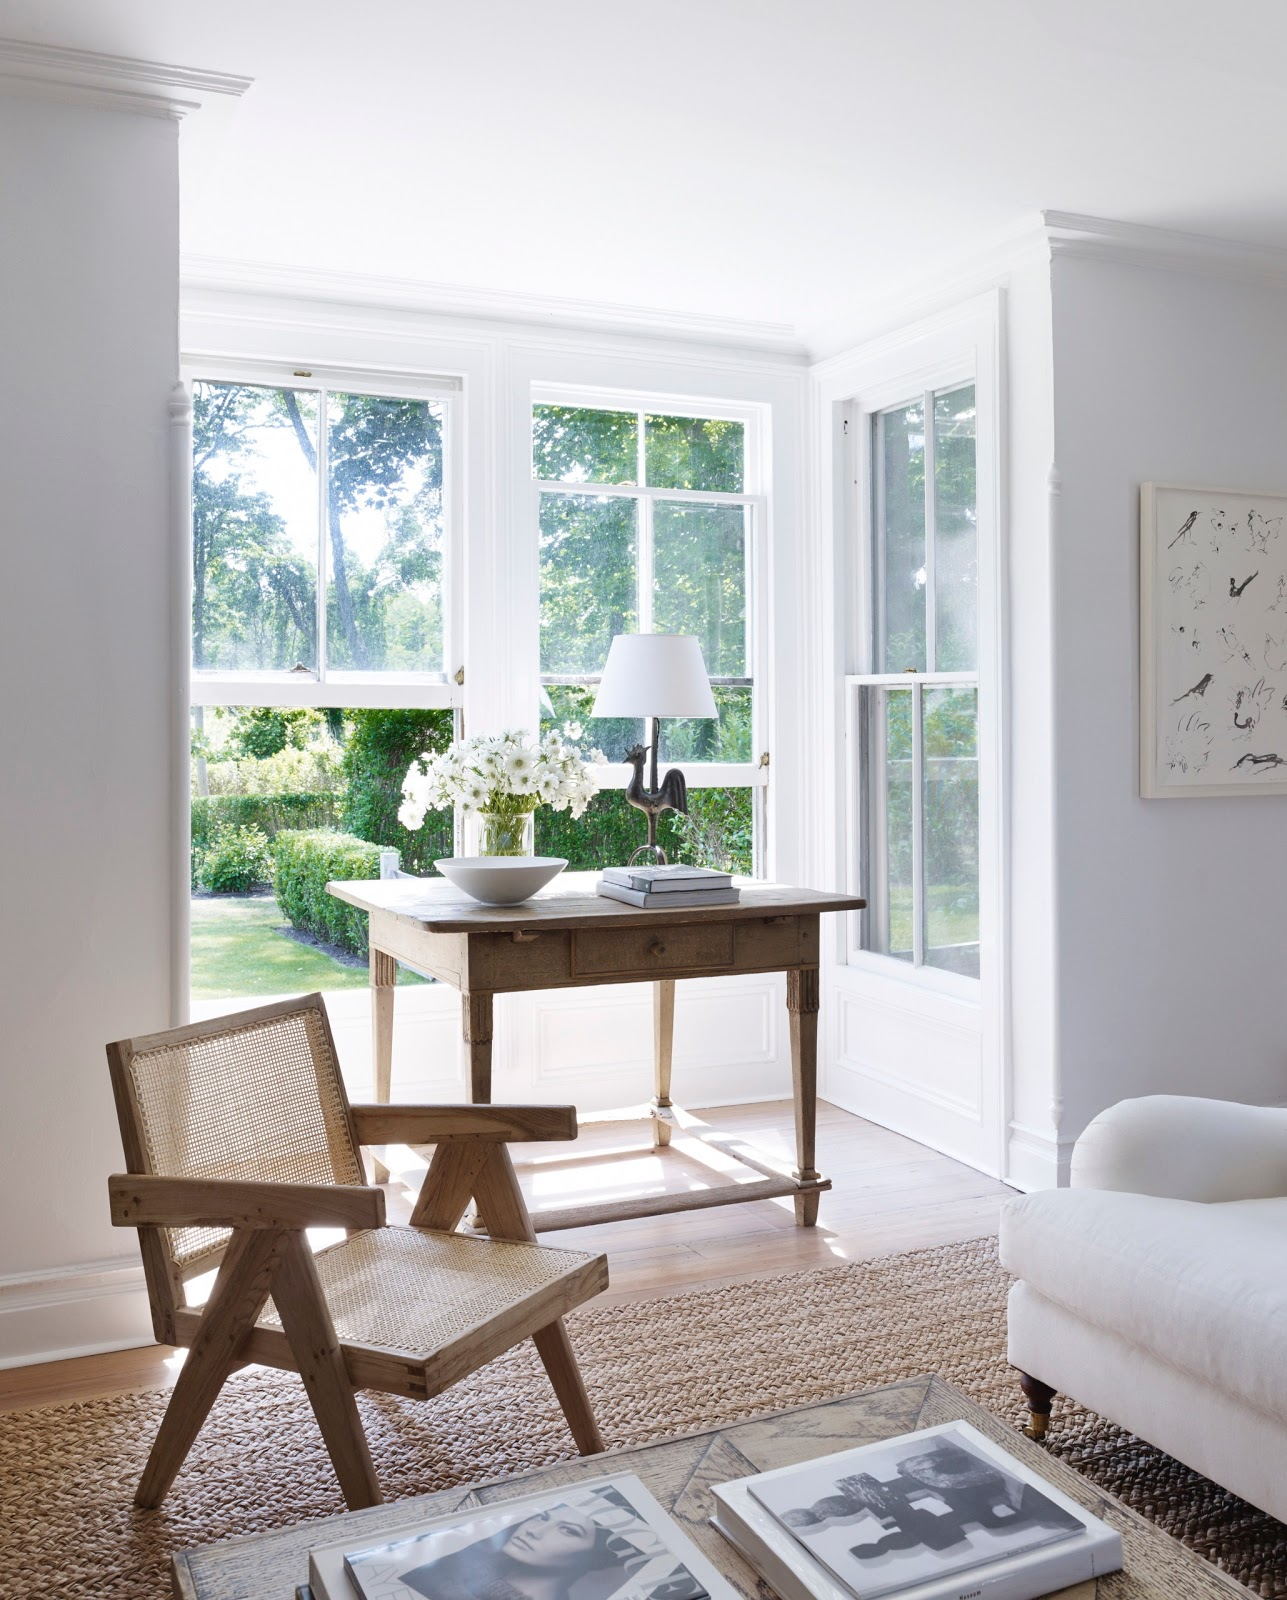 Décor Inspiration: A Bright & Breezy Home in the Hamptons